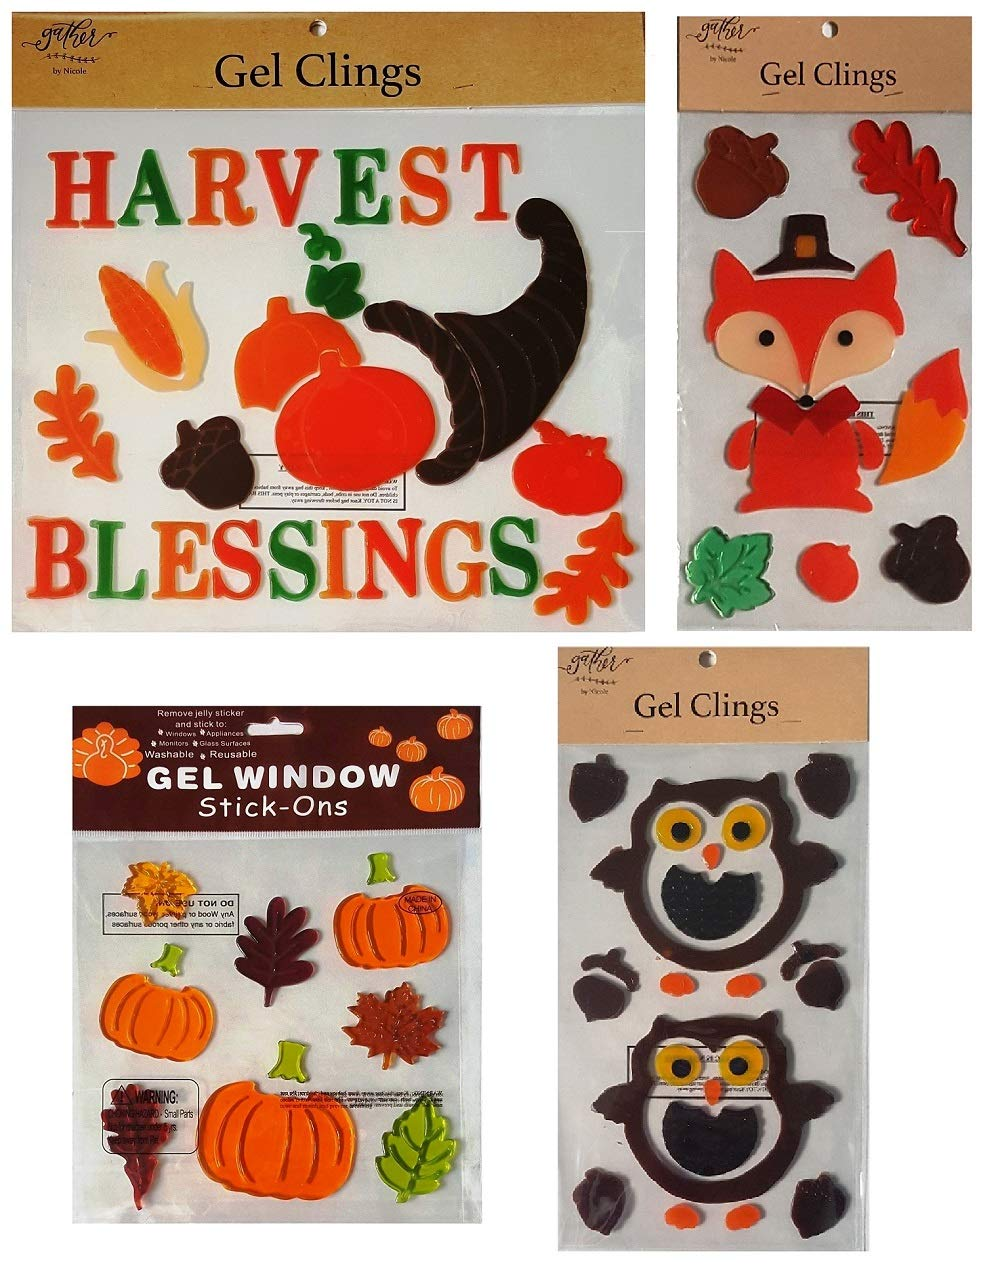 Fall Decorations - Window Gel Clings Woodland Owls and Fox, Harvest Blessings Cornucopia, Pumpkins, Acorns, Autumn Leaves, and More- 4 Sheets